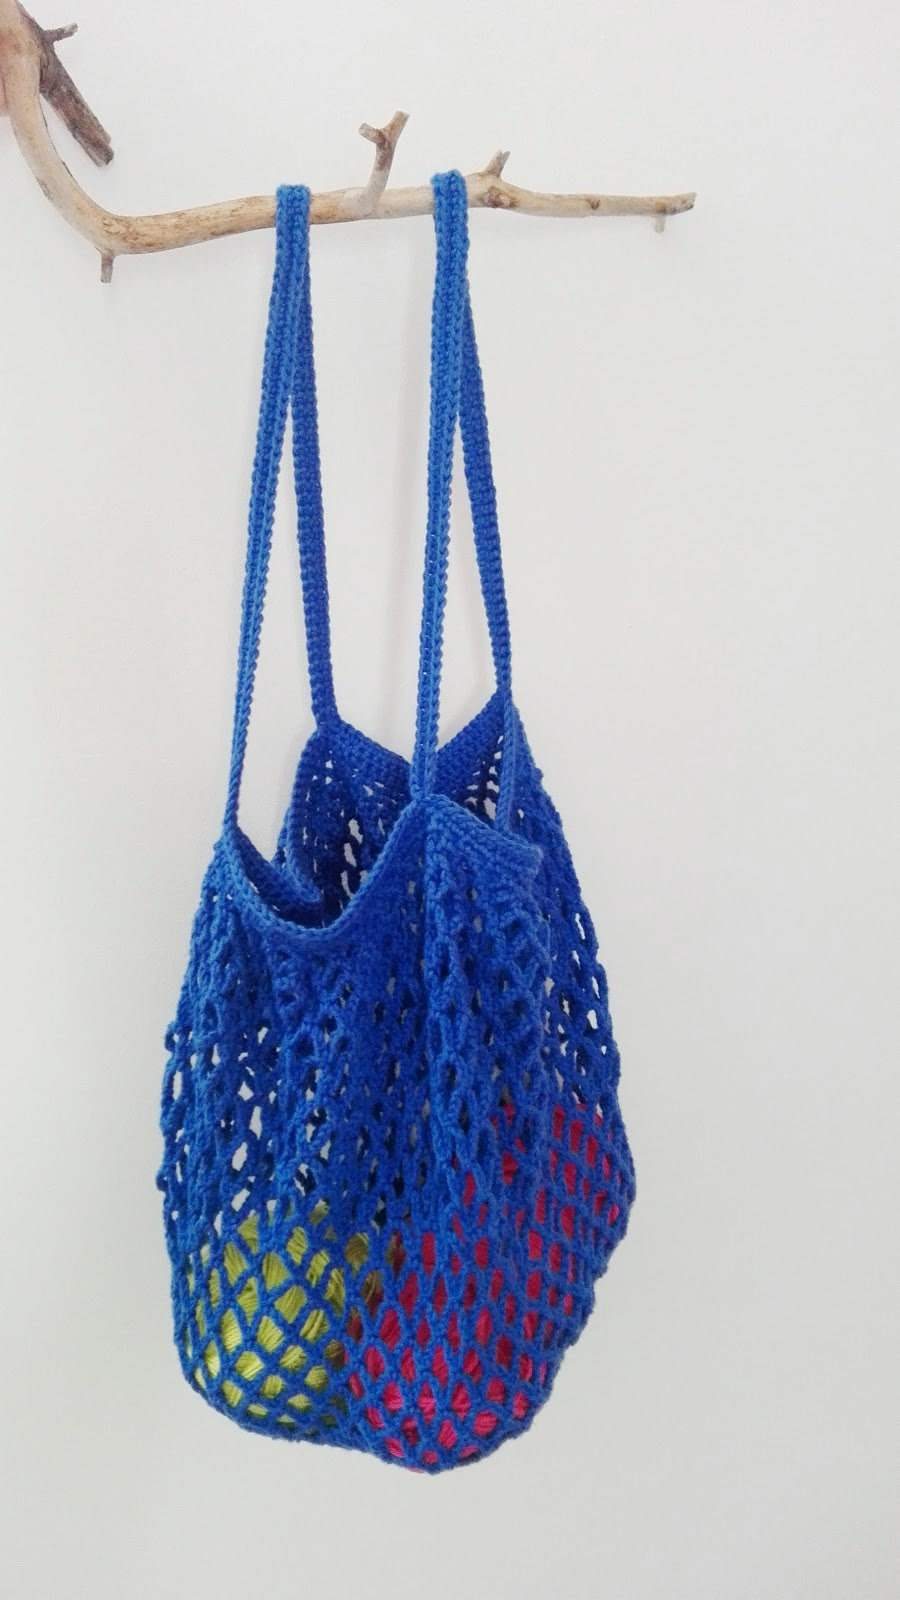 Re-Enganchada: Re-usable blue crochet bag - Bolsa de ganchillo re ...